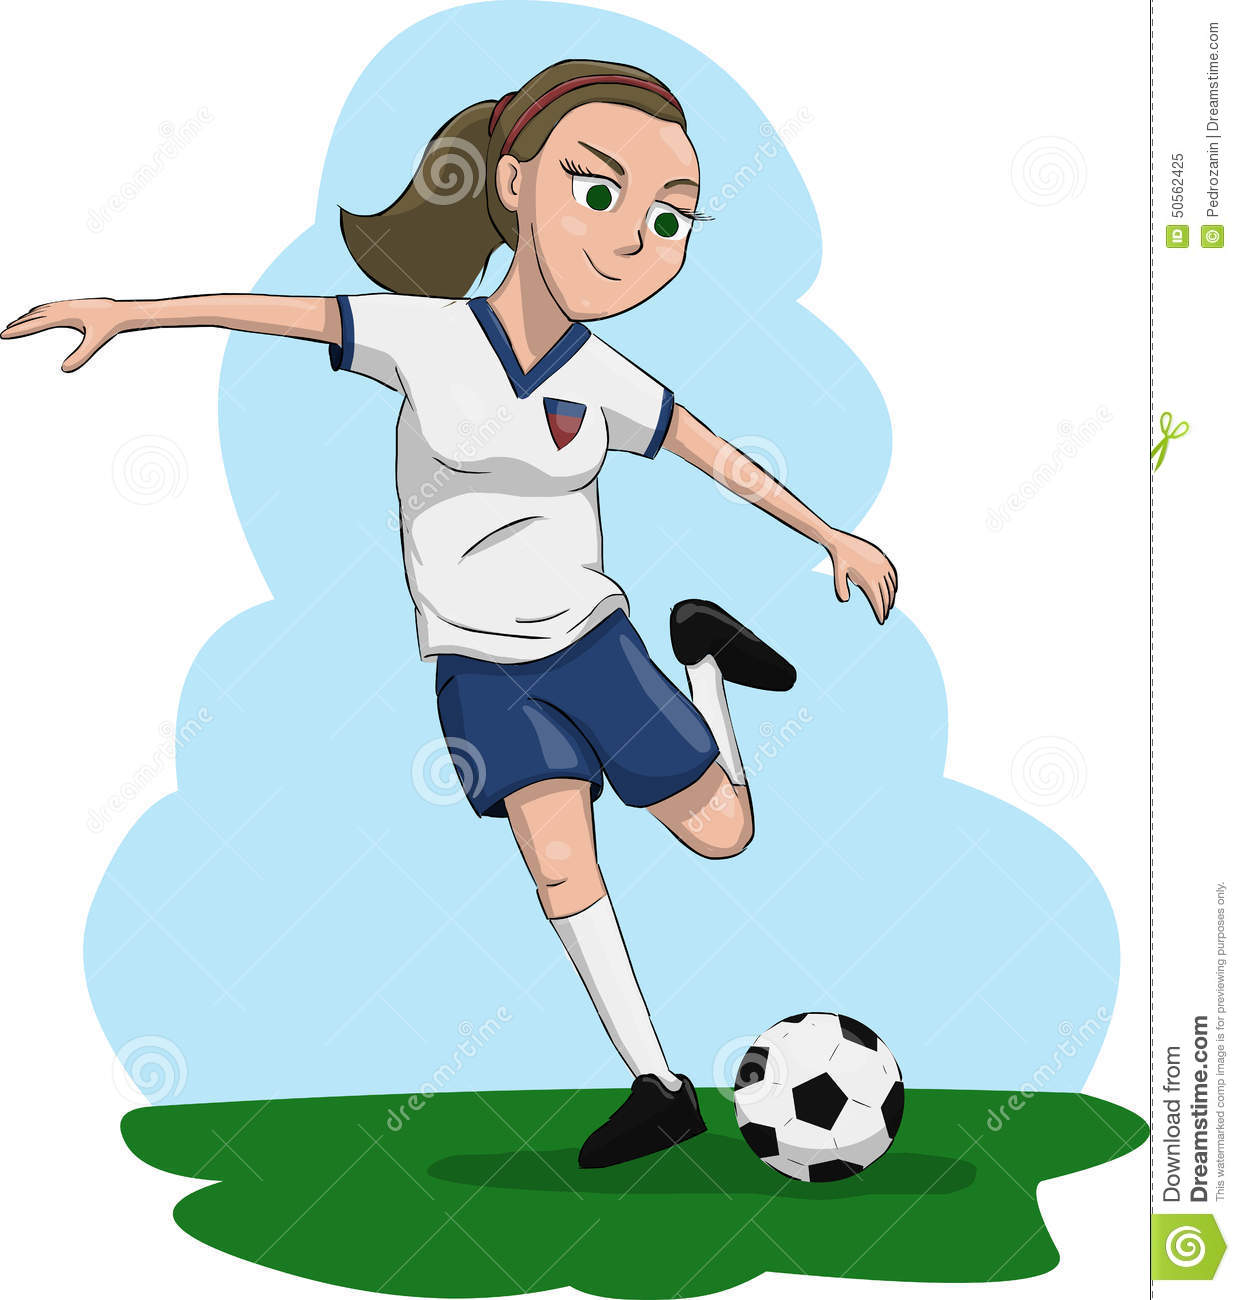 woman playing soccer stock illustration image 50562425 football player clipart silhouette football player clipart lineman